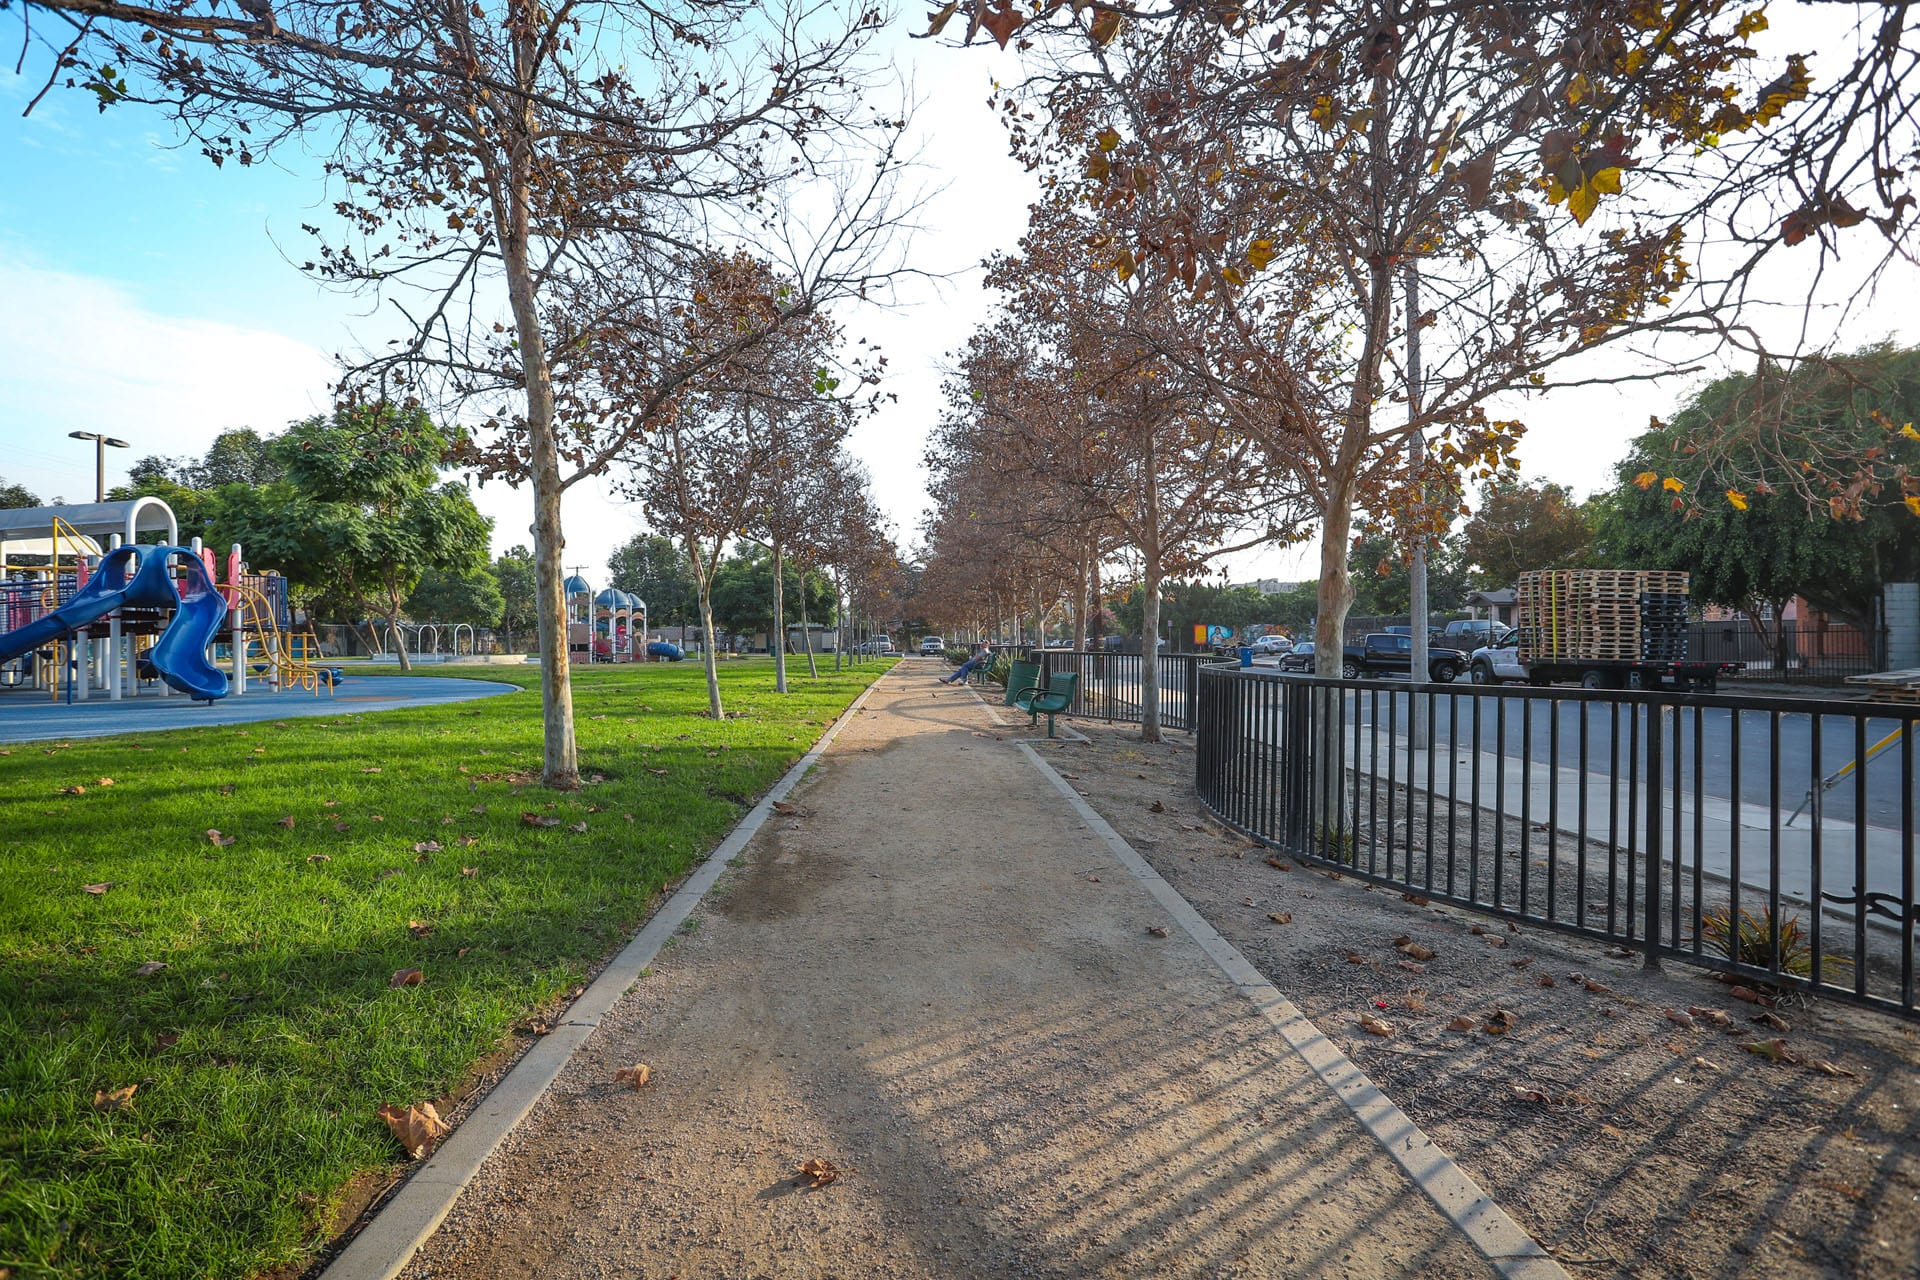 Looking down the dirt path by the playground